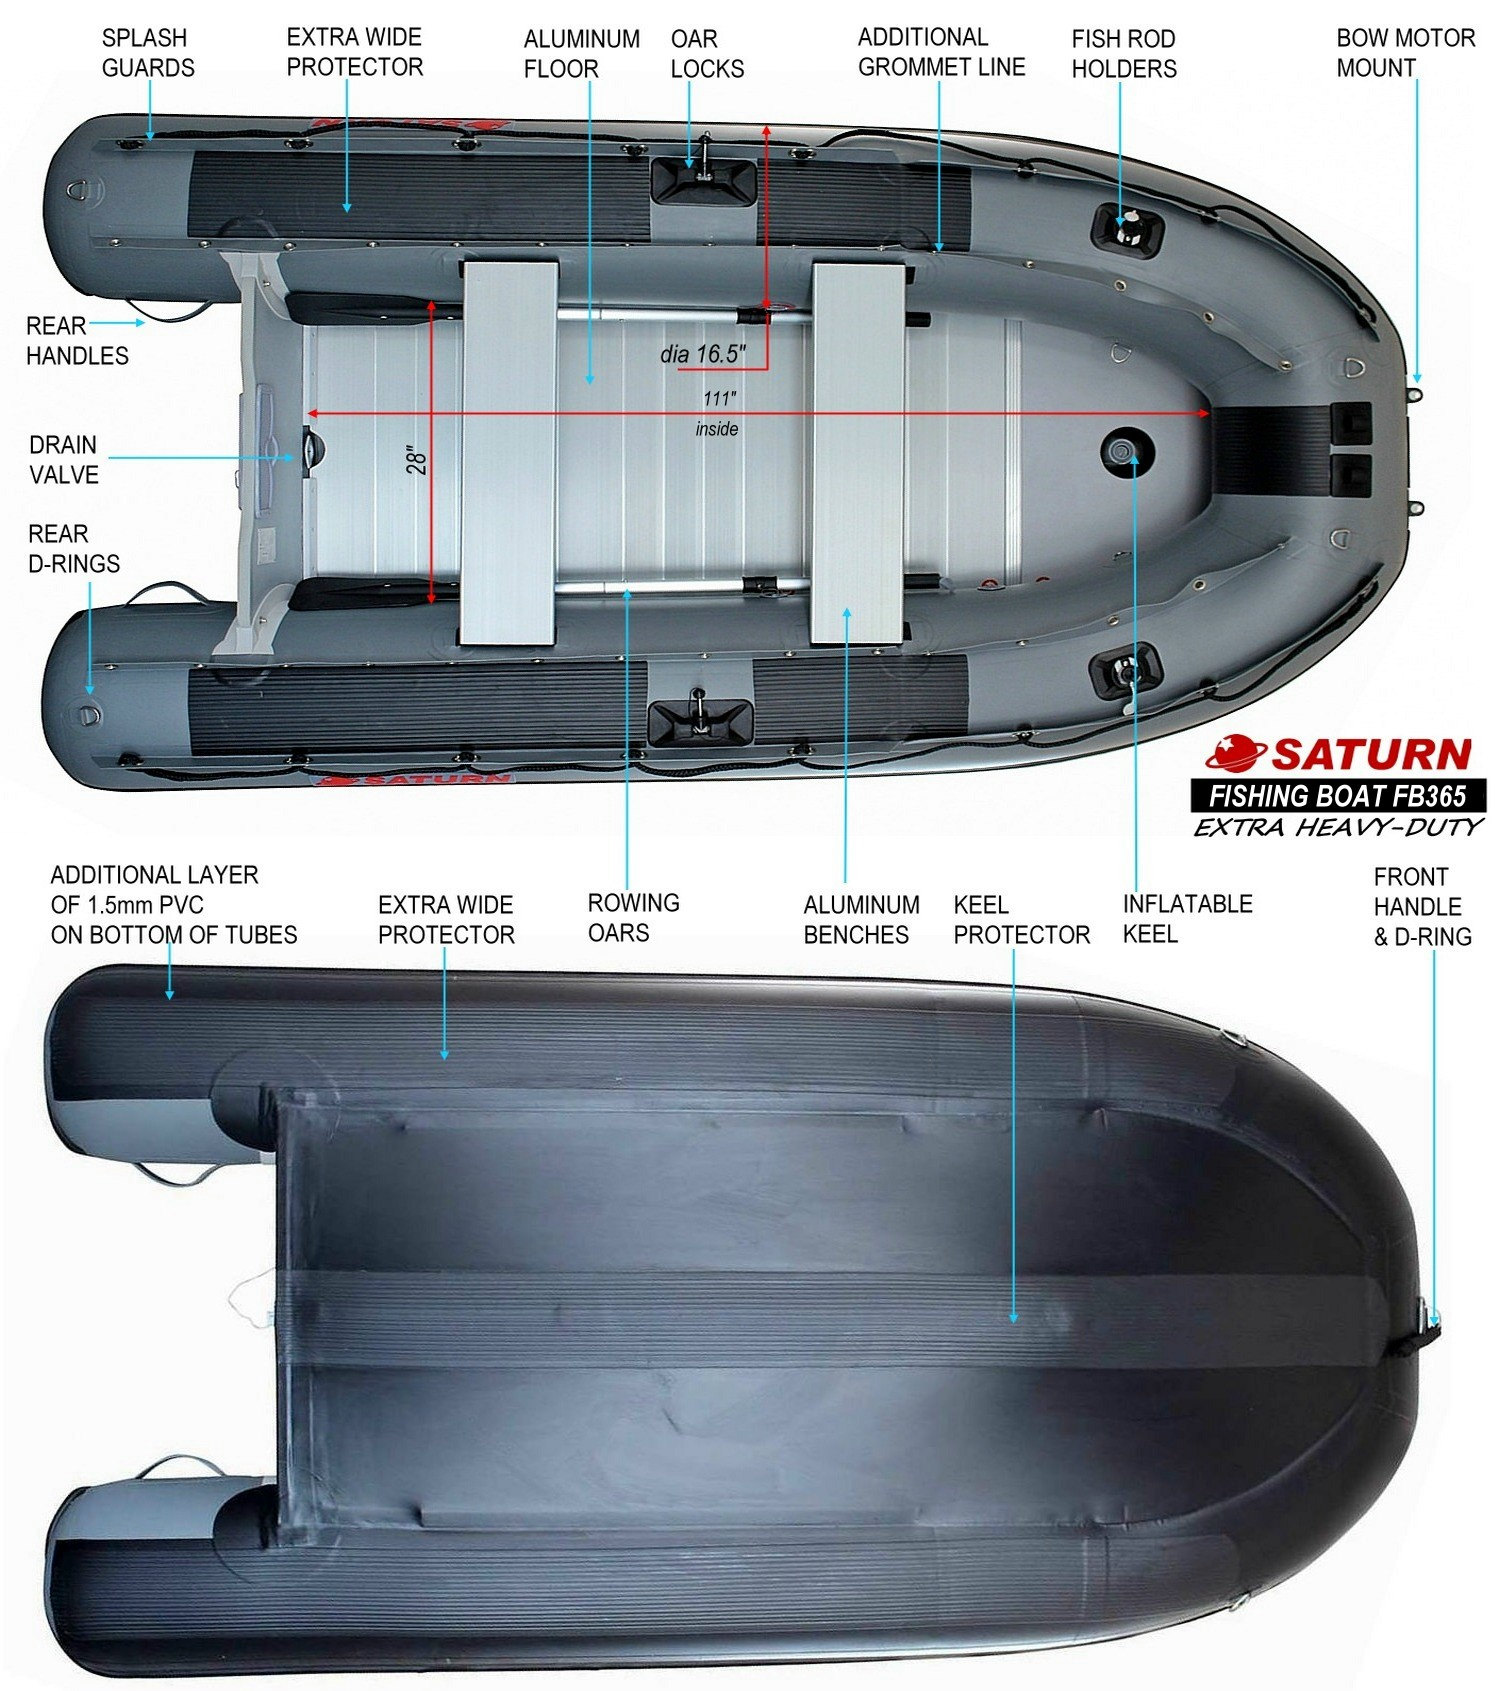 FB365 inflatable boat specs